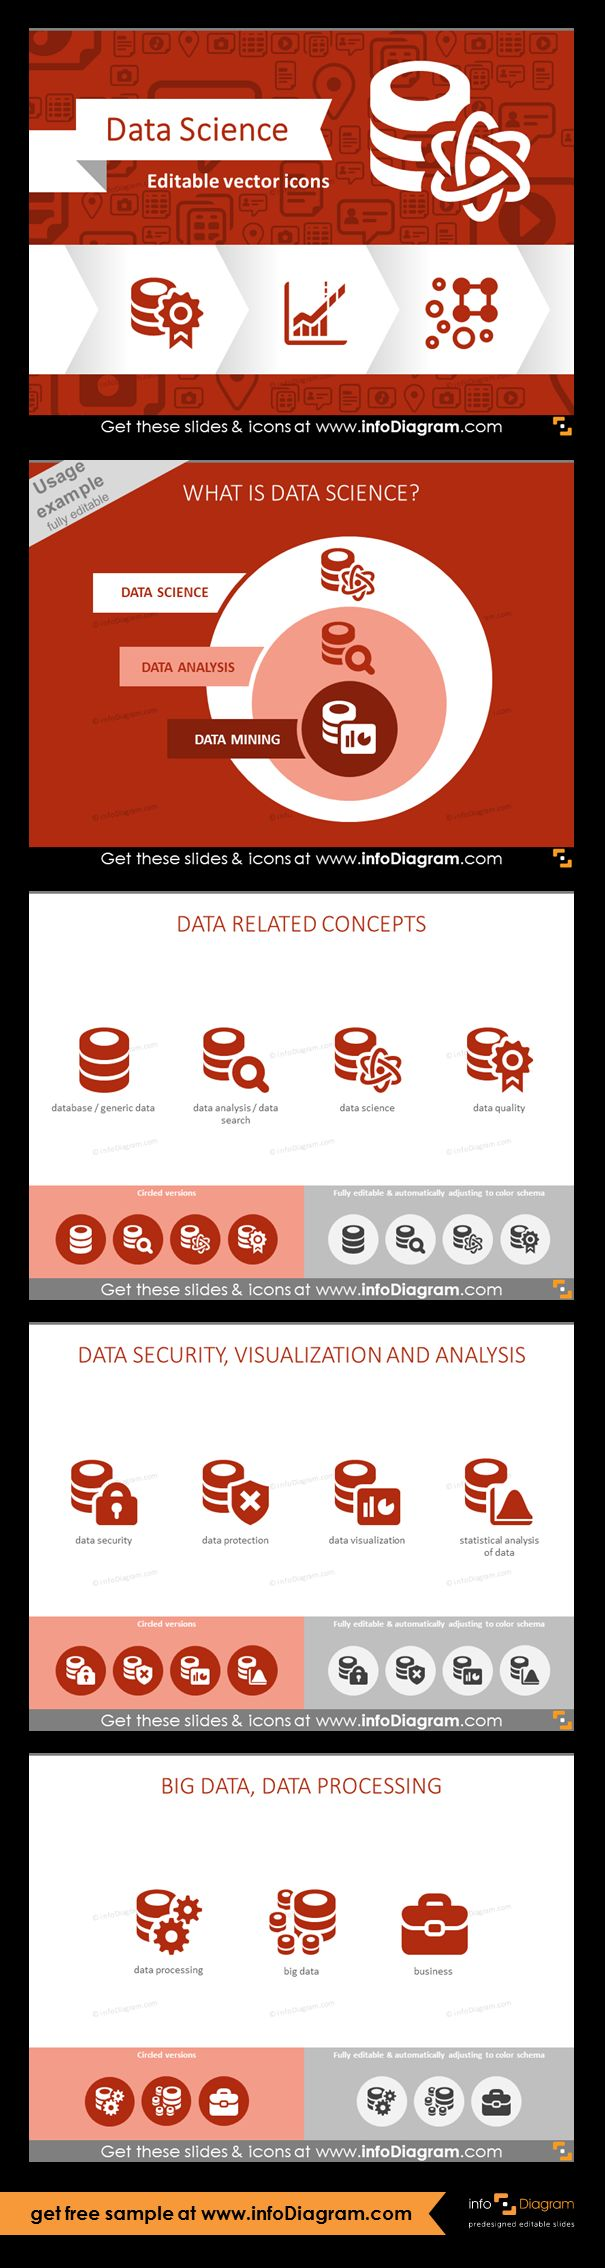 Data Science graphics. Data related concepts: database, data analysis, data search, data science, data quality. Icons of data security, data protection, data visualization and statistical analysis of data. Big Data and data processing. Usage example: What is data Science? Schema with Data Science, Data Analysis and Data Mining icons.